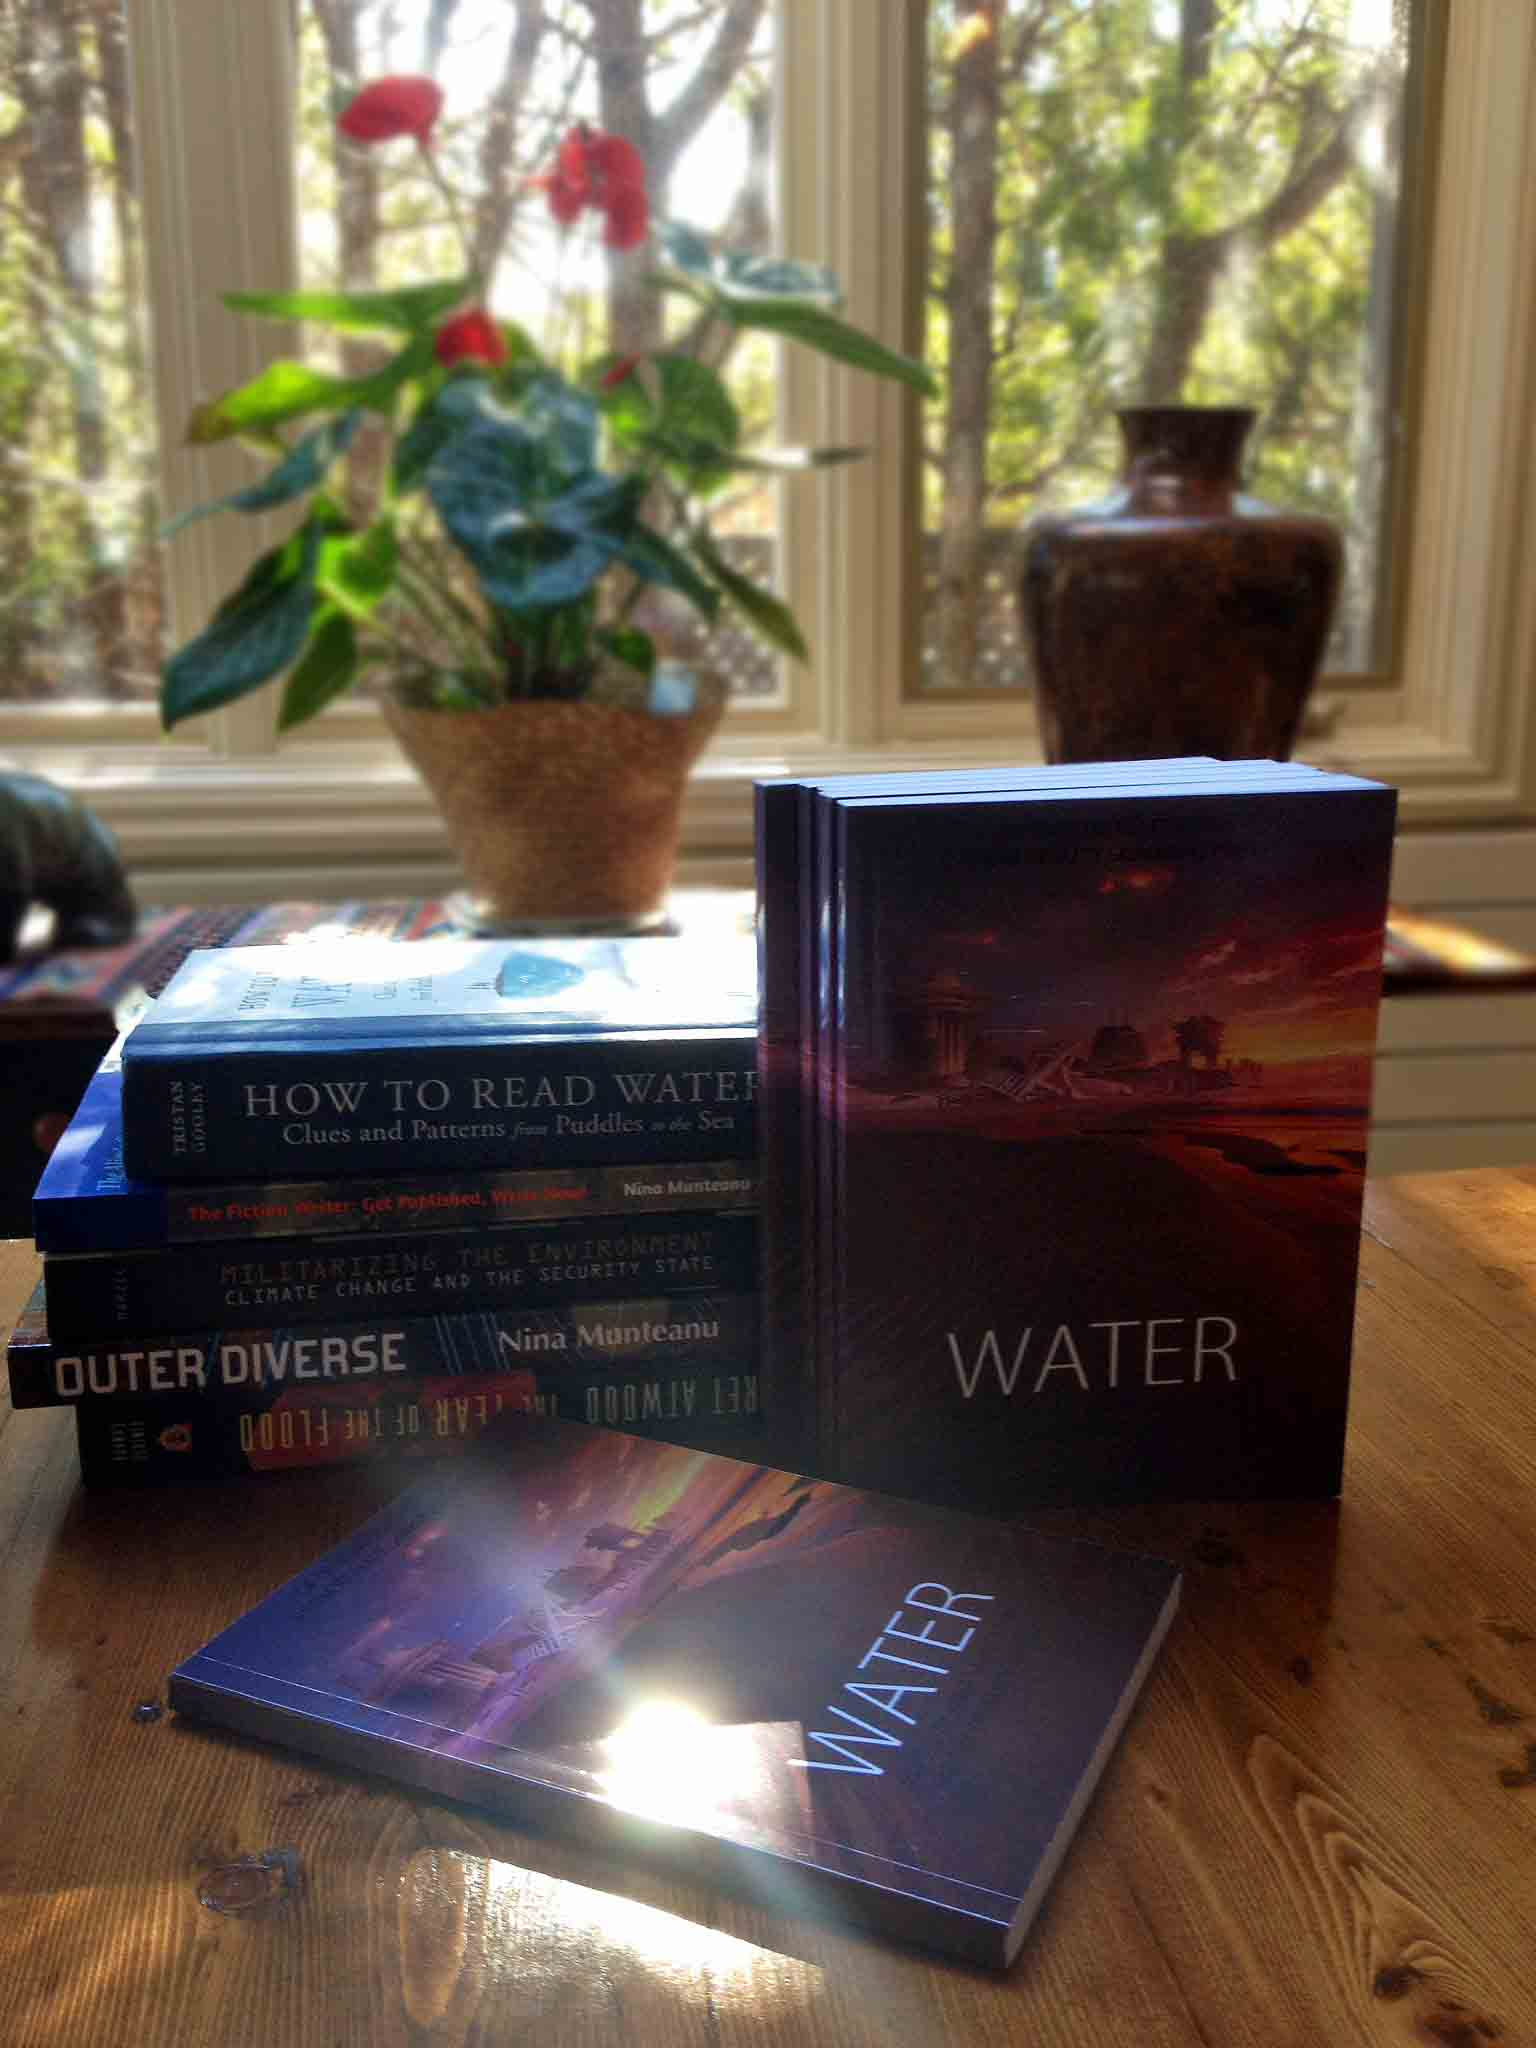 WaterBooks2